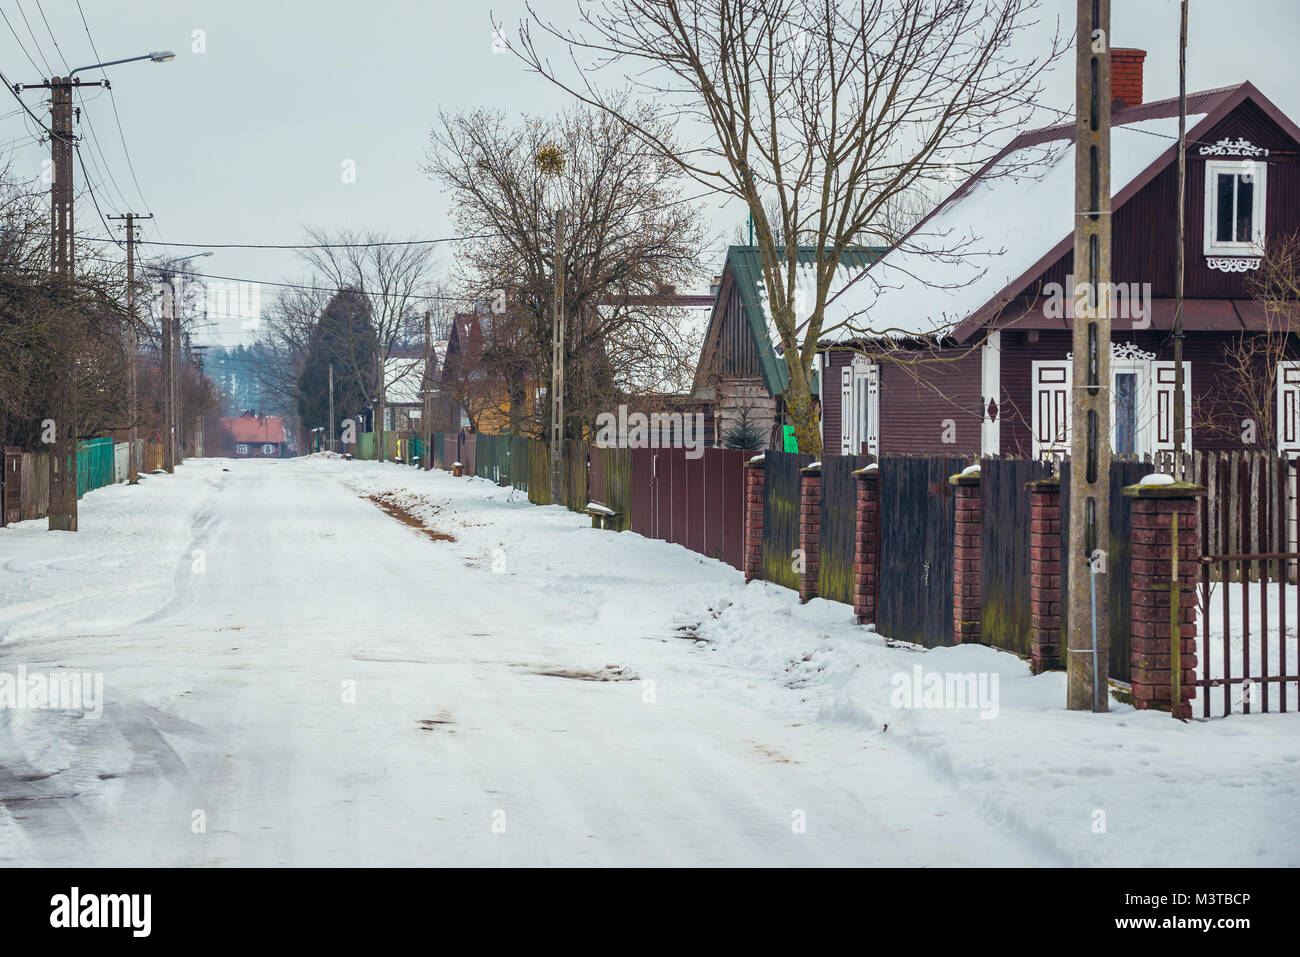 Wooden houses along road in Soce village on so called Land of Open Shutters trail, famous for traditional architecture - Stock Image